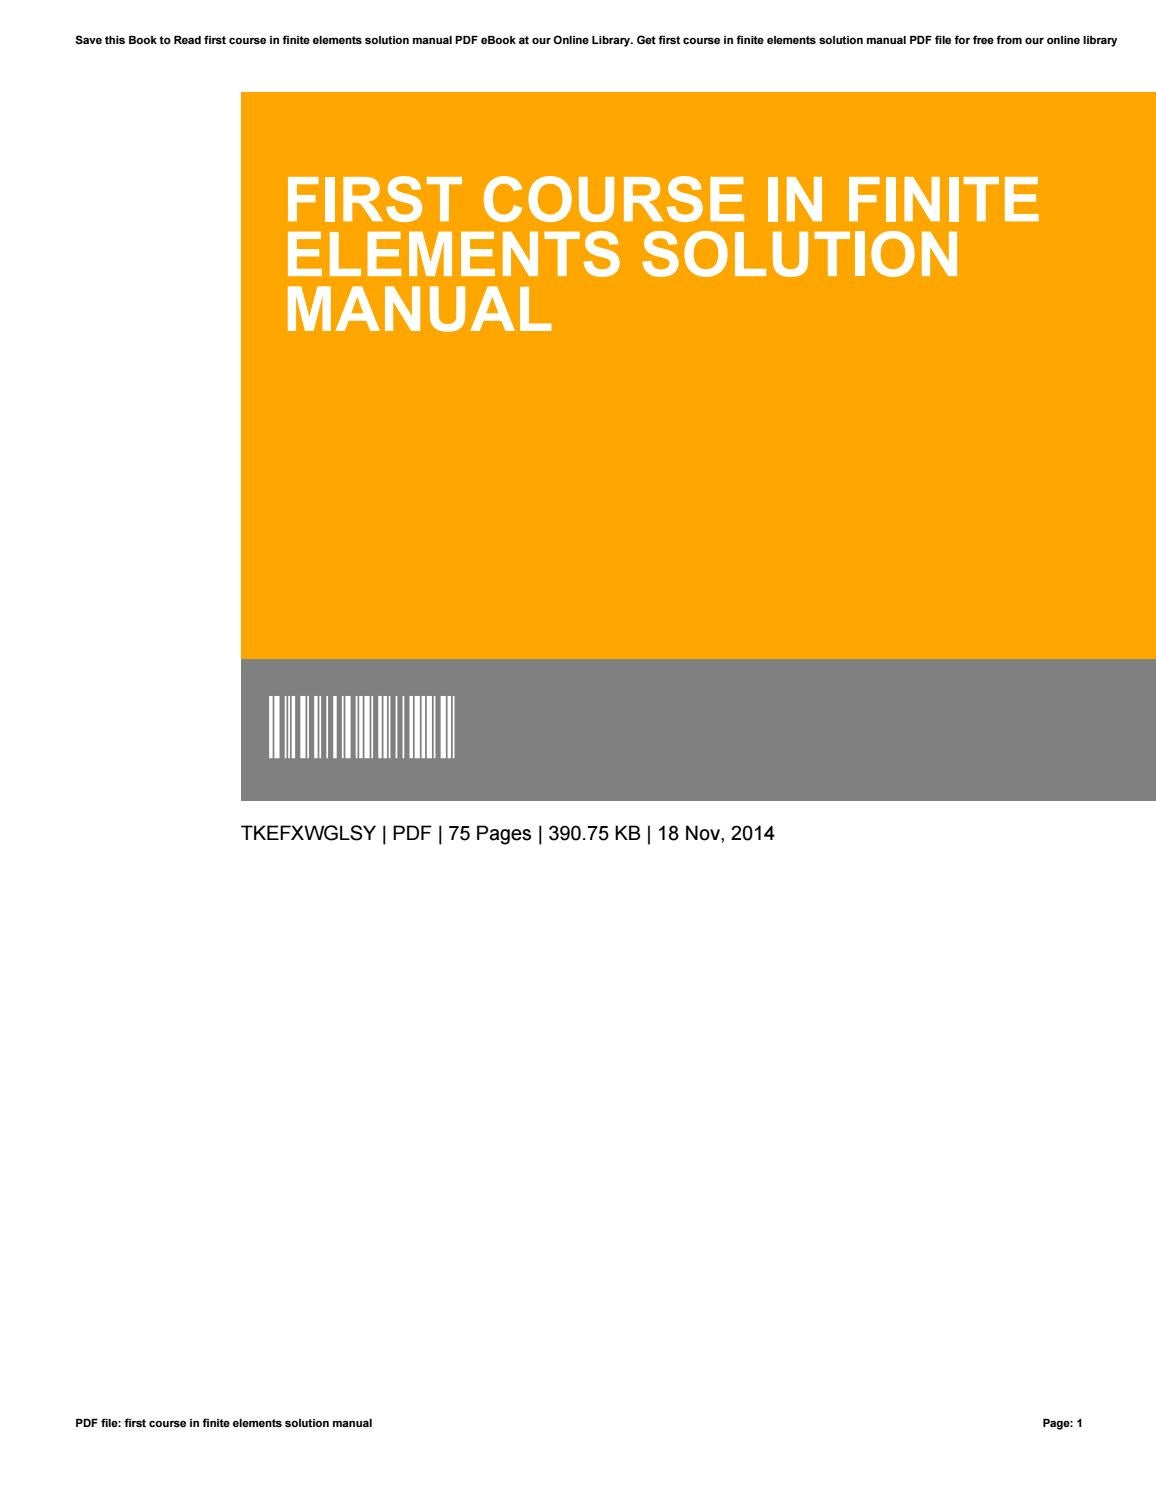 First course in finite elements solution manual by RandallBlount4135 - issuu